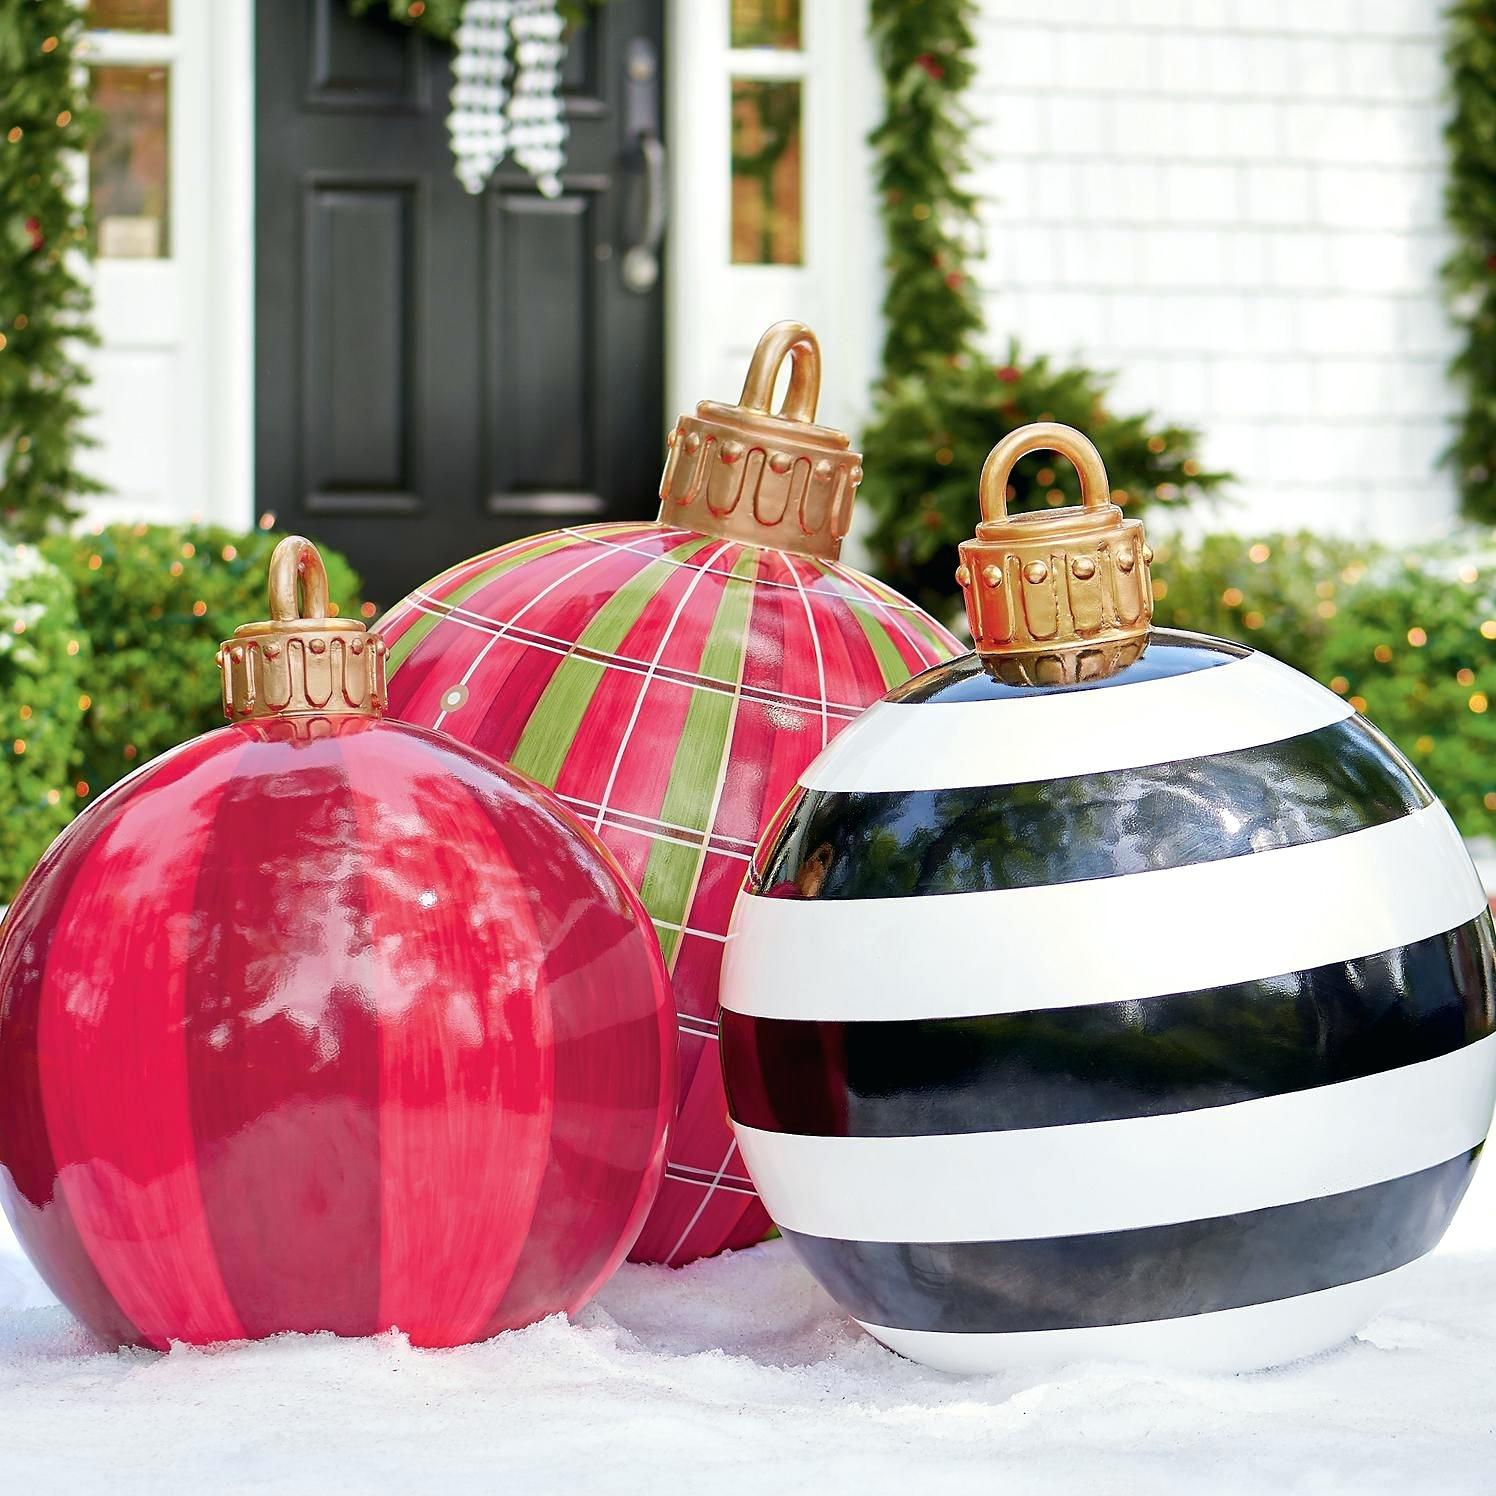 Outdoor giant Christmas ornaments are one of my favorite decorations for Christmas. They are super easy to make and are so cute!